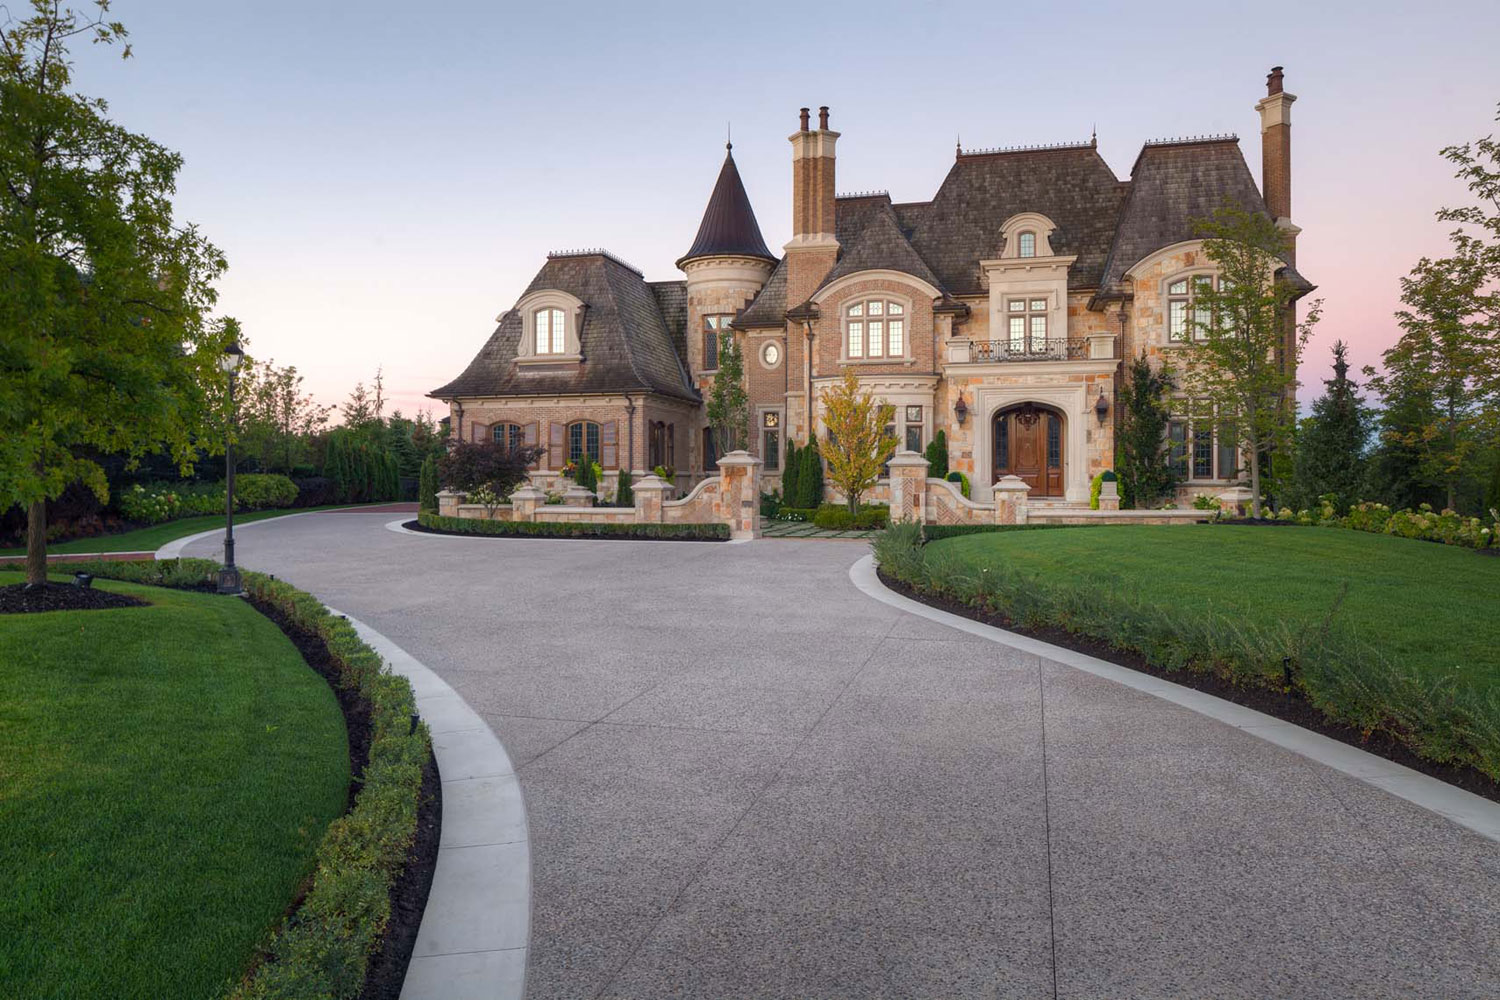 Outside Toronto, Canada, this French chateau-inspired residence in Kleinburg Village offers 1.28 acres of manicured grounds and the latest resort-style amenities.